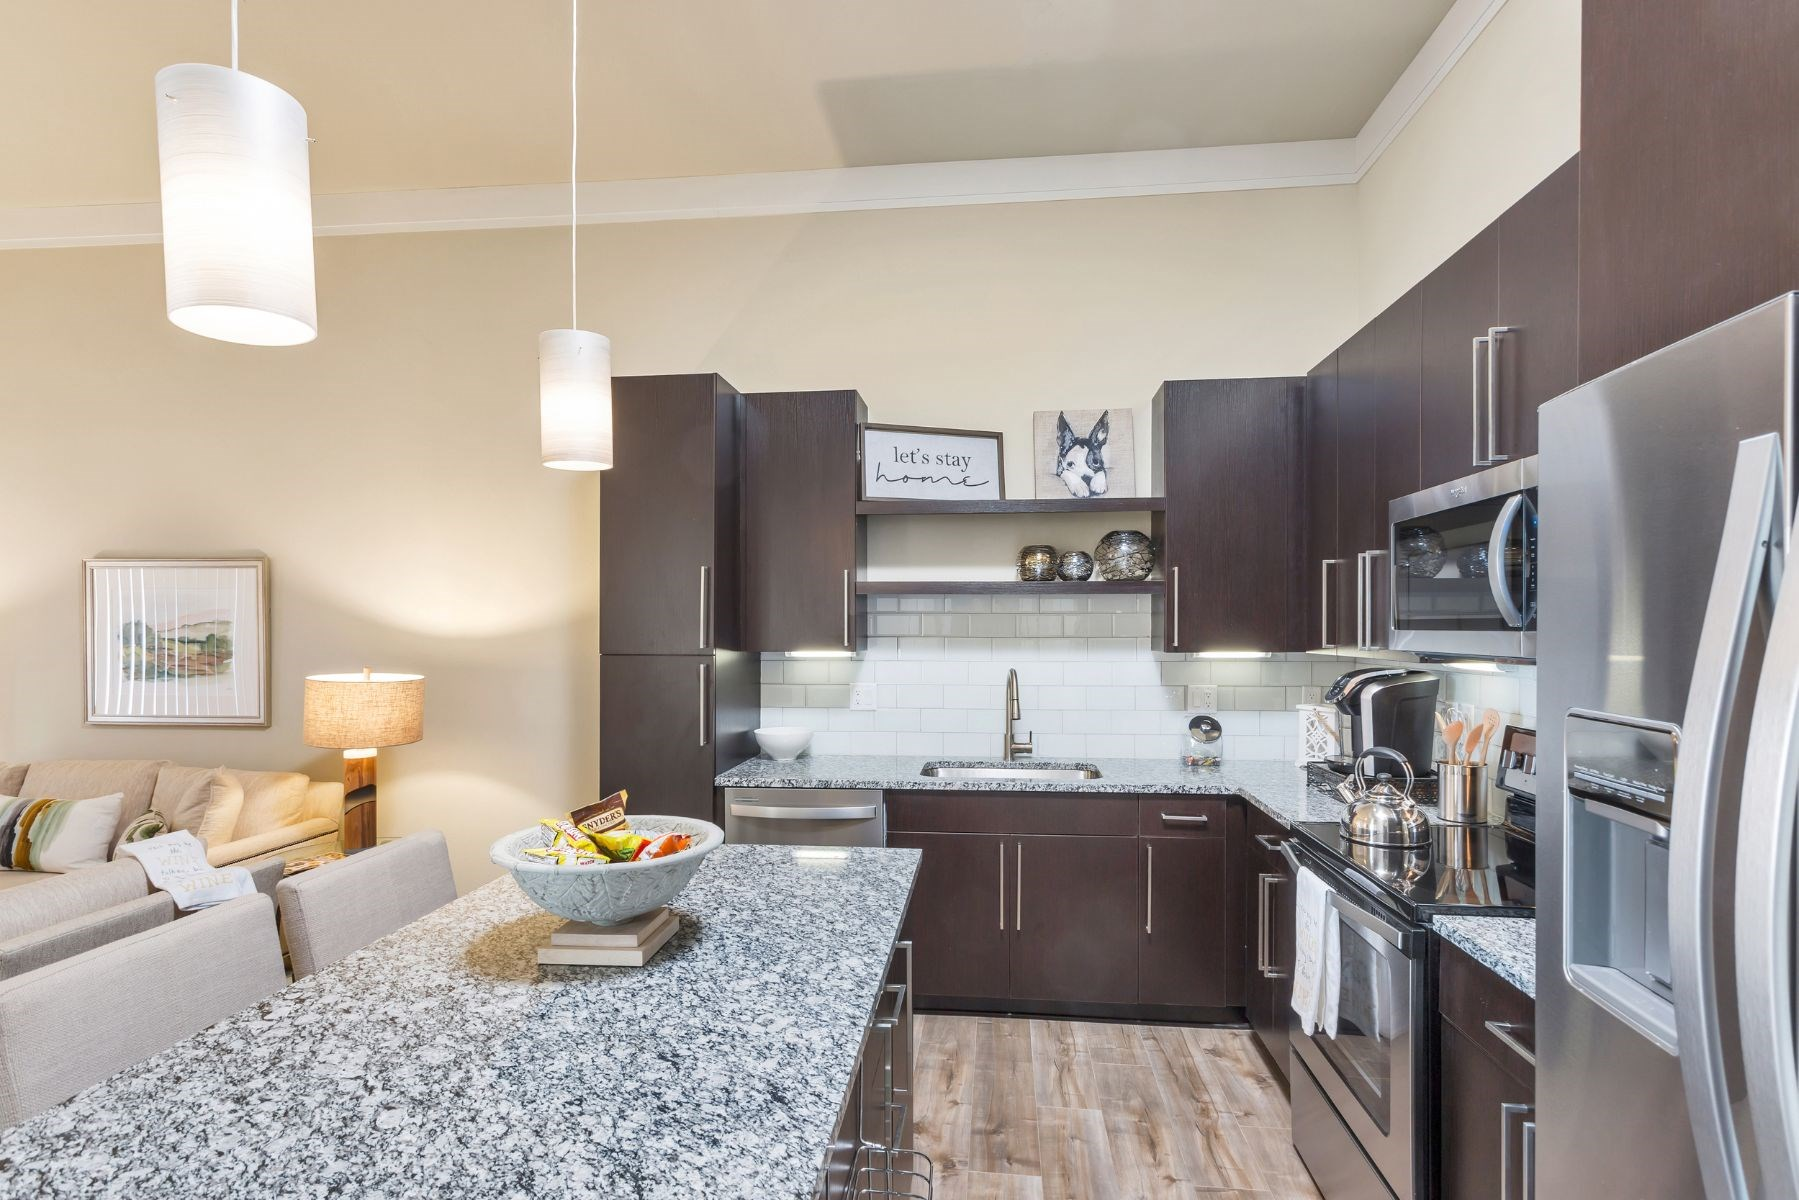 Westwood Green Apartments Kitchen with large island, stainless appliances, and quartz countertops